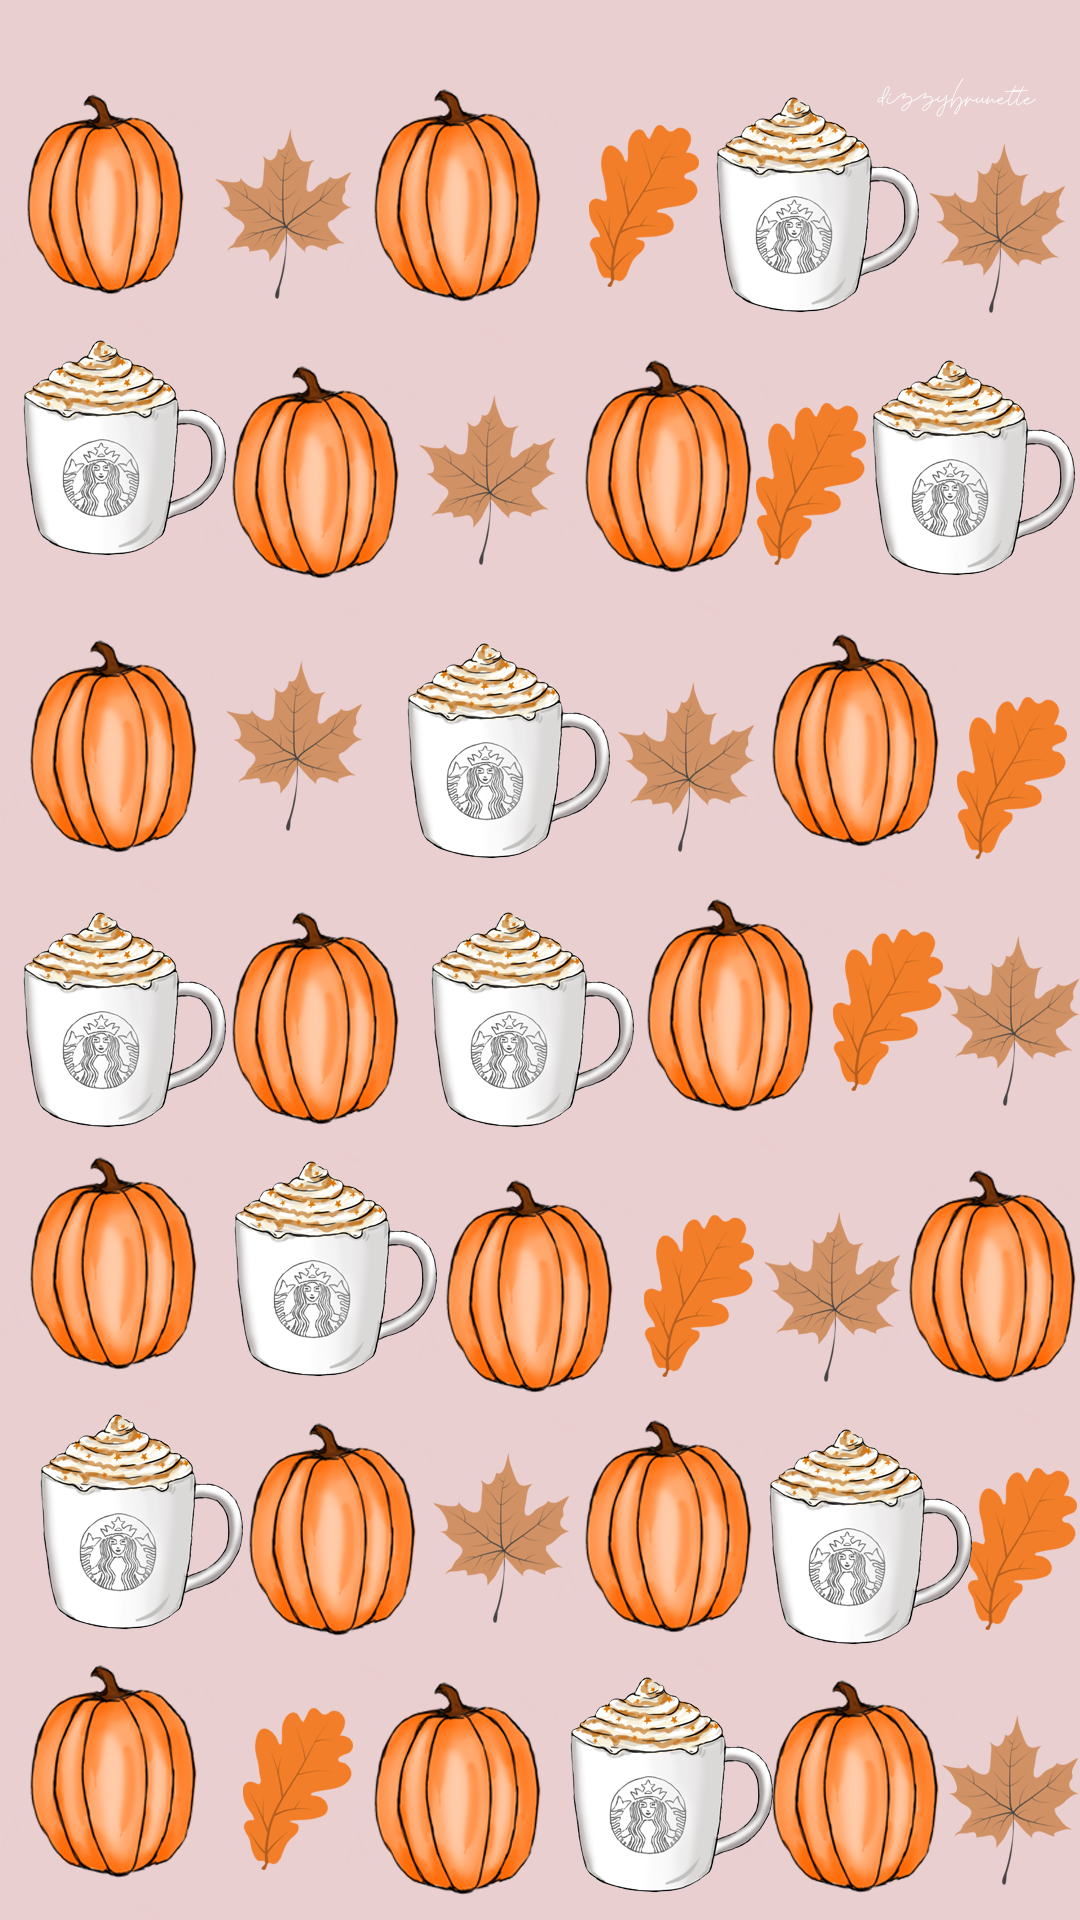 Free Autumn Wallpapers For You To Download #autumnwallpaper